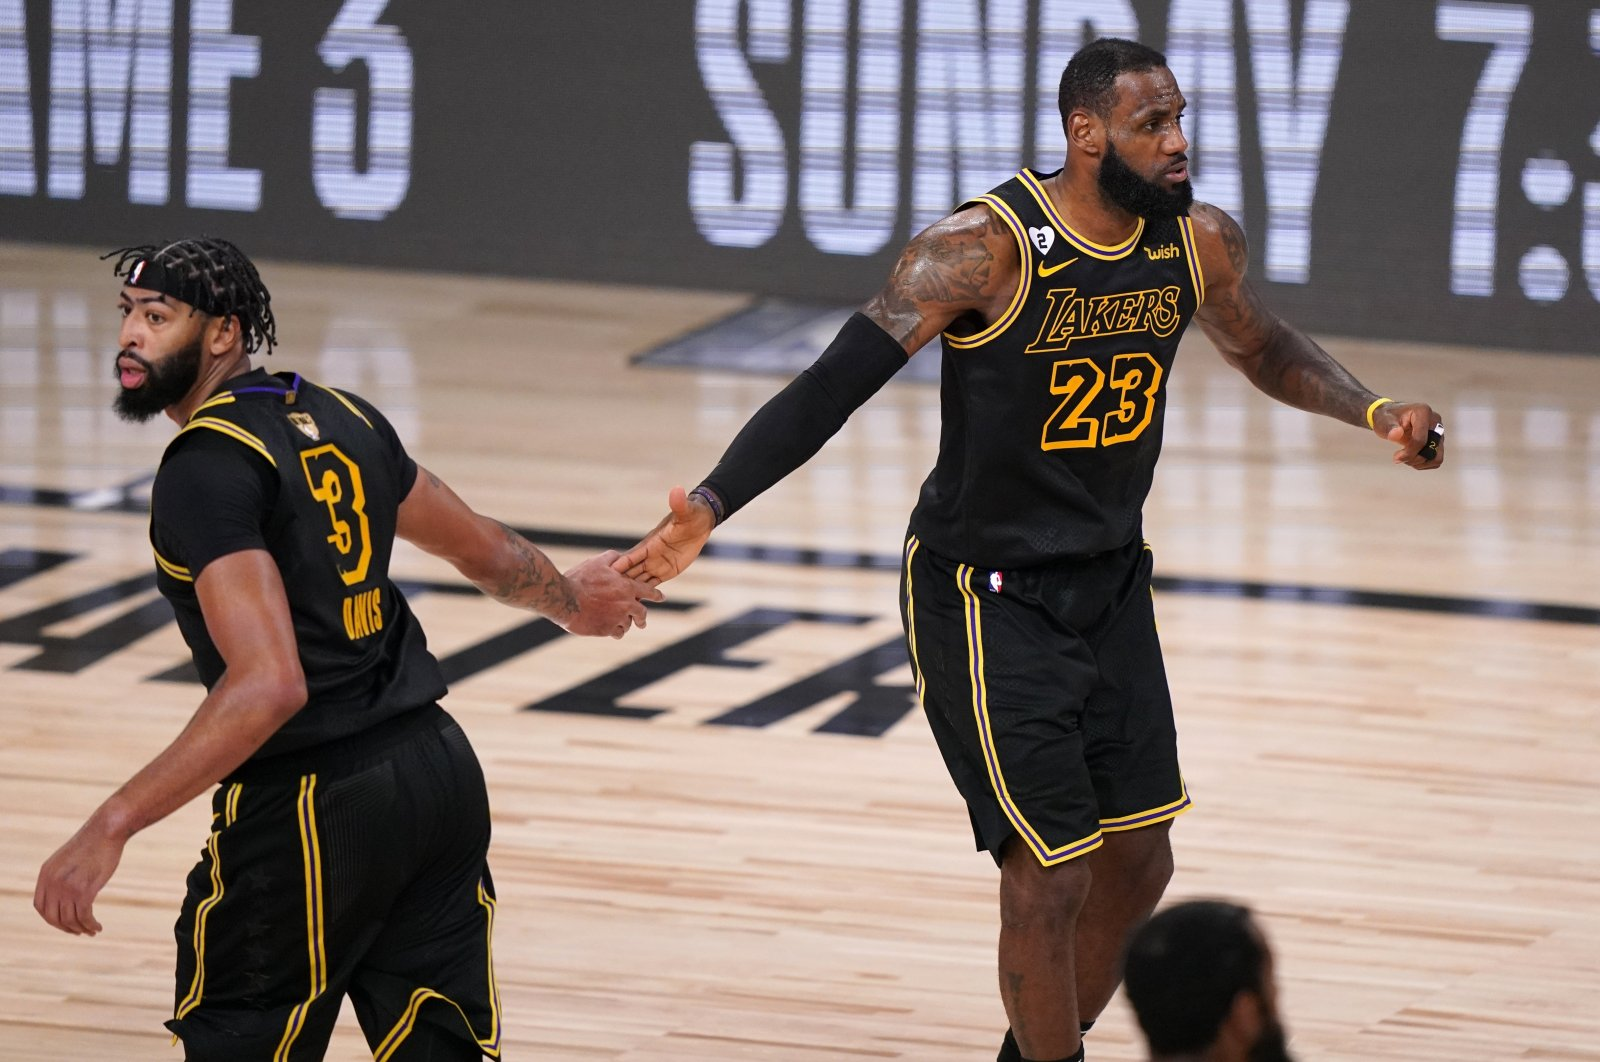 Los Angeles Lakers' Anthony Davis (3) and LeBron James (23) celebrate a basket against the Miami Heat during the second half of Game 2 of basketball's NBA Finals, Friday, Oct. 2, 2020, in Lake Buena Vista, Fla. (AP Photo)